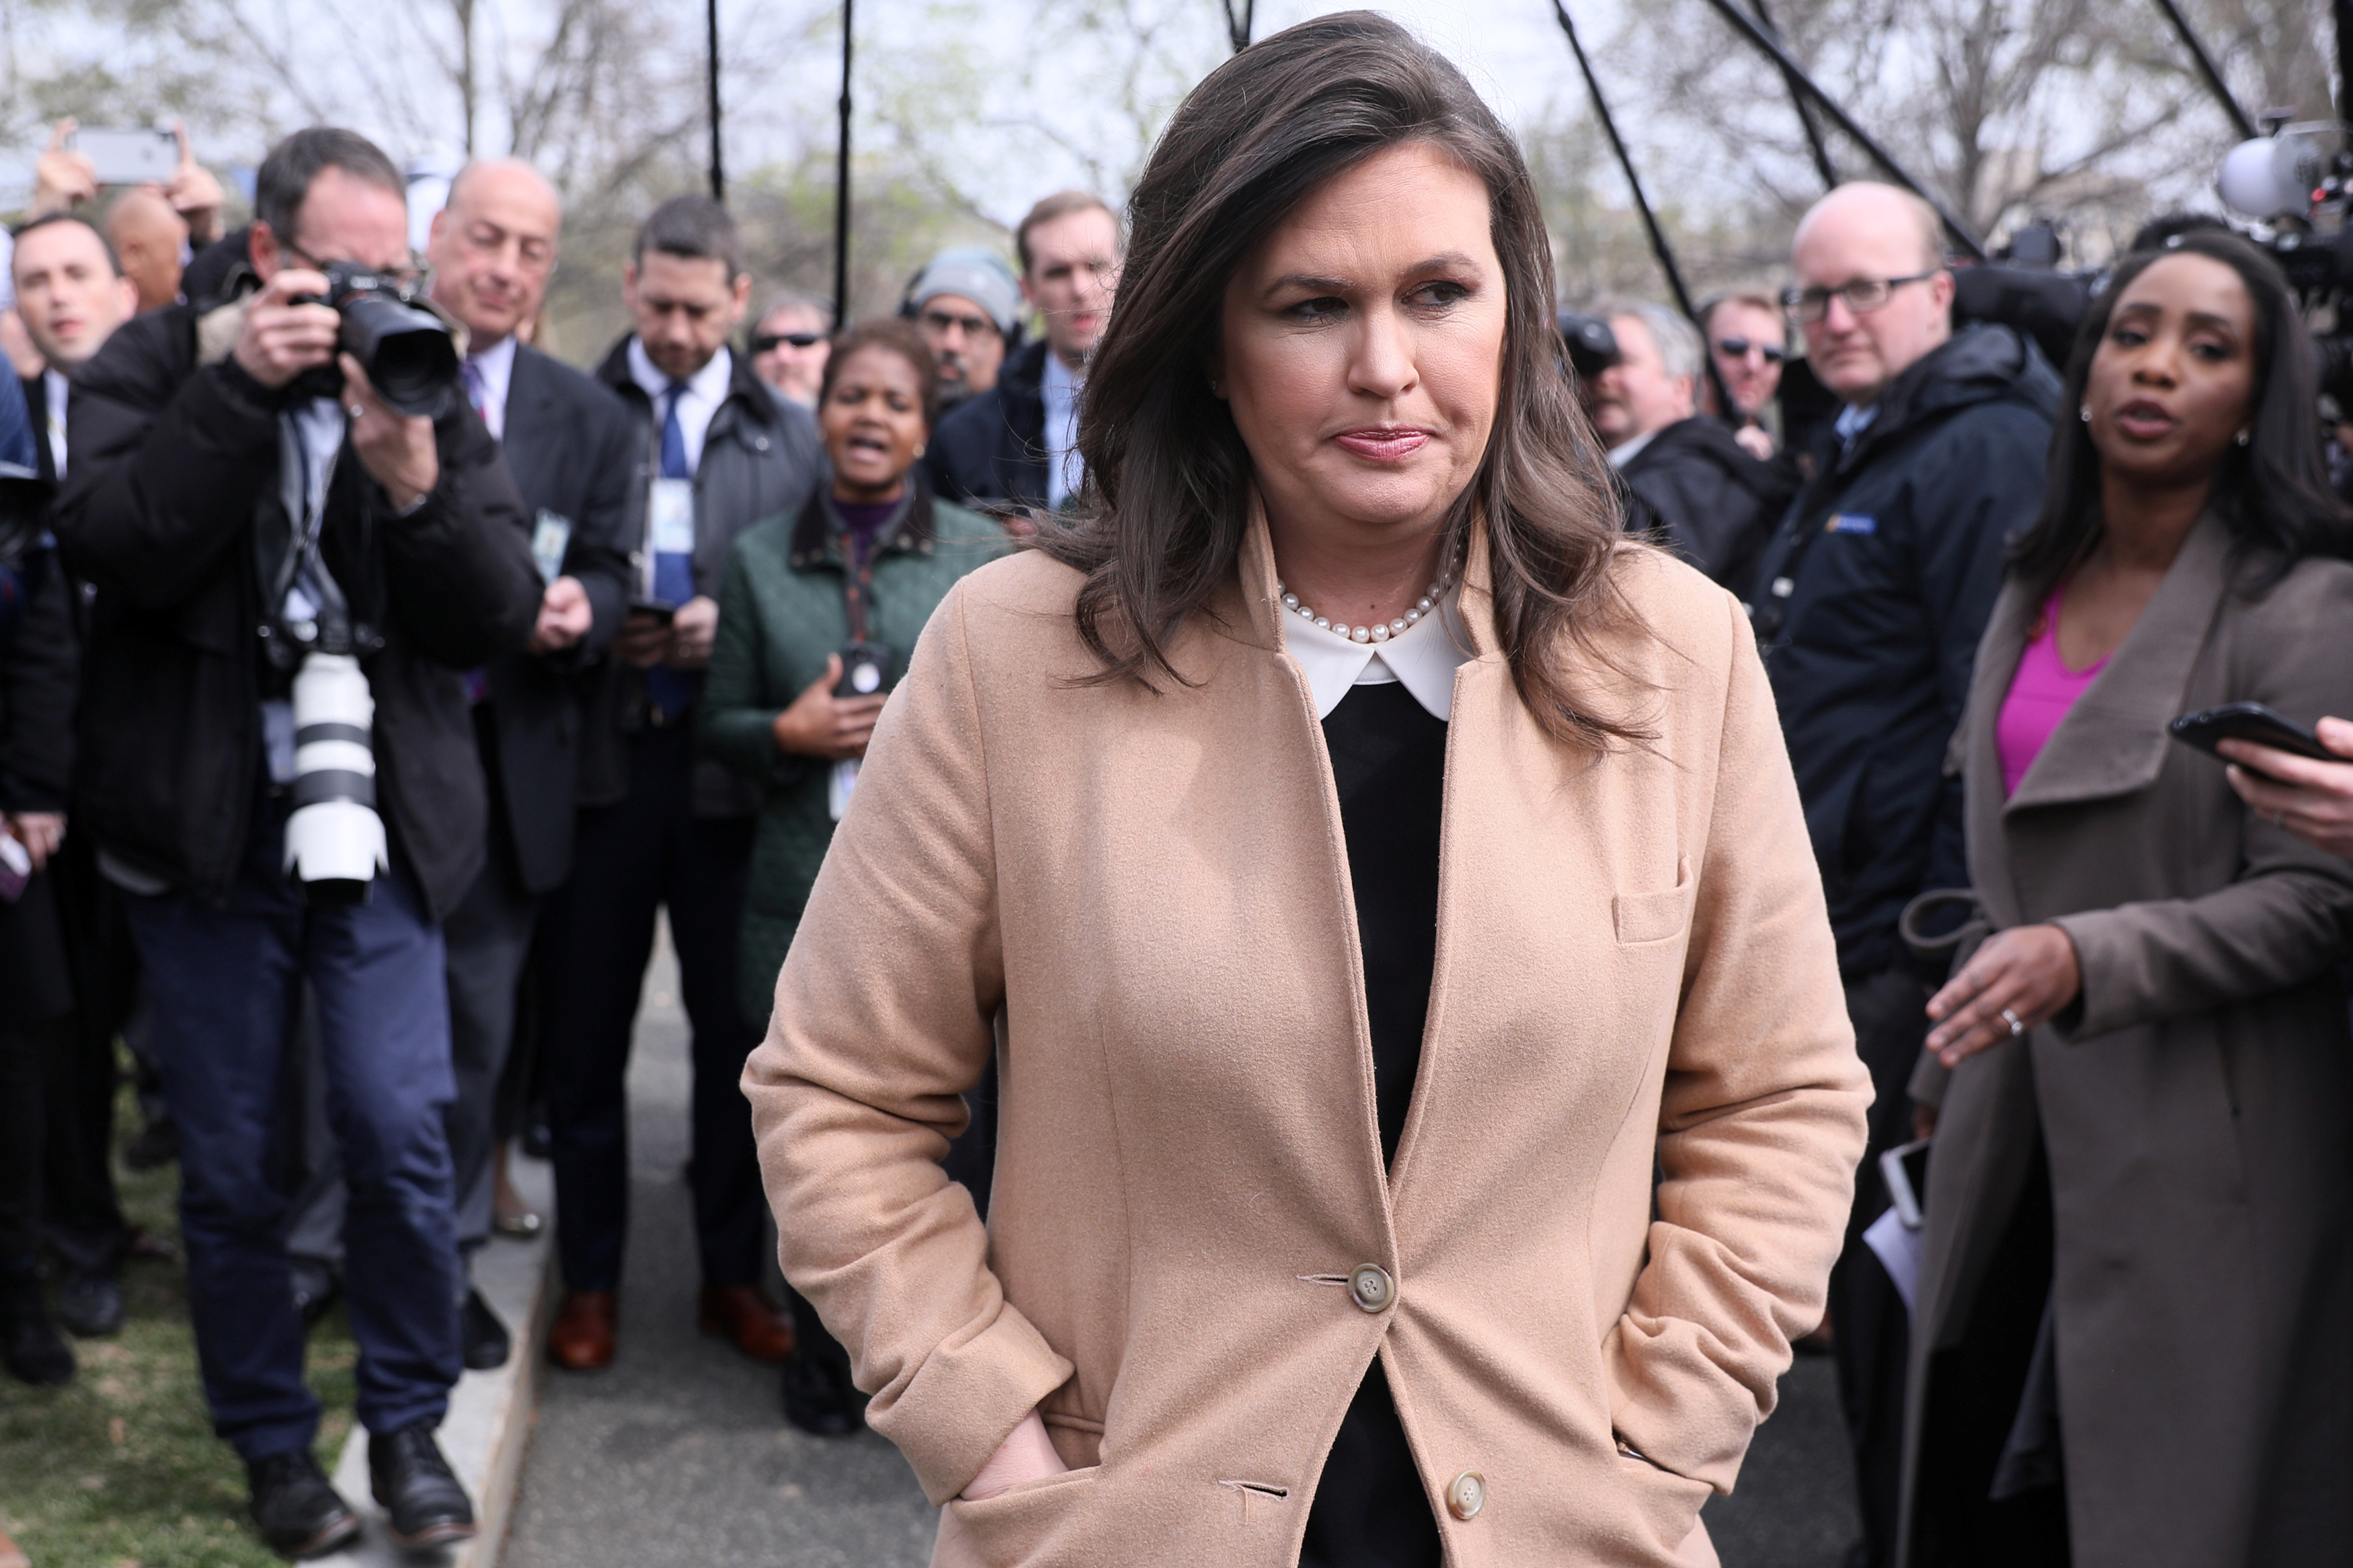 White House Press Secretary Sarah Huckabee Sanders departs after speaking to reporters at the White House in Washington, U.S. April 2, 2019.  REUTERS/Jonathan Ernst